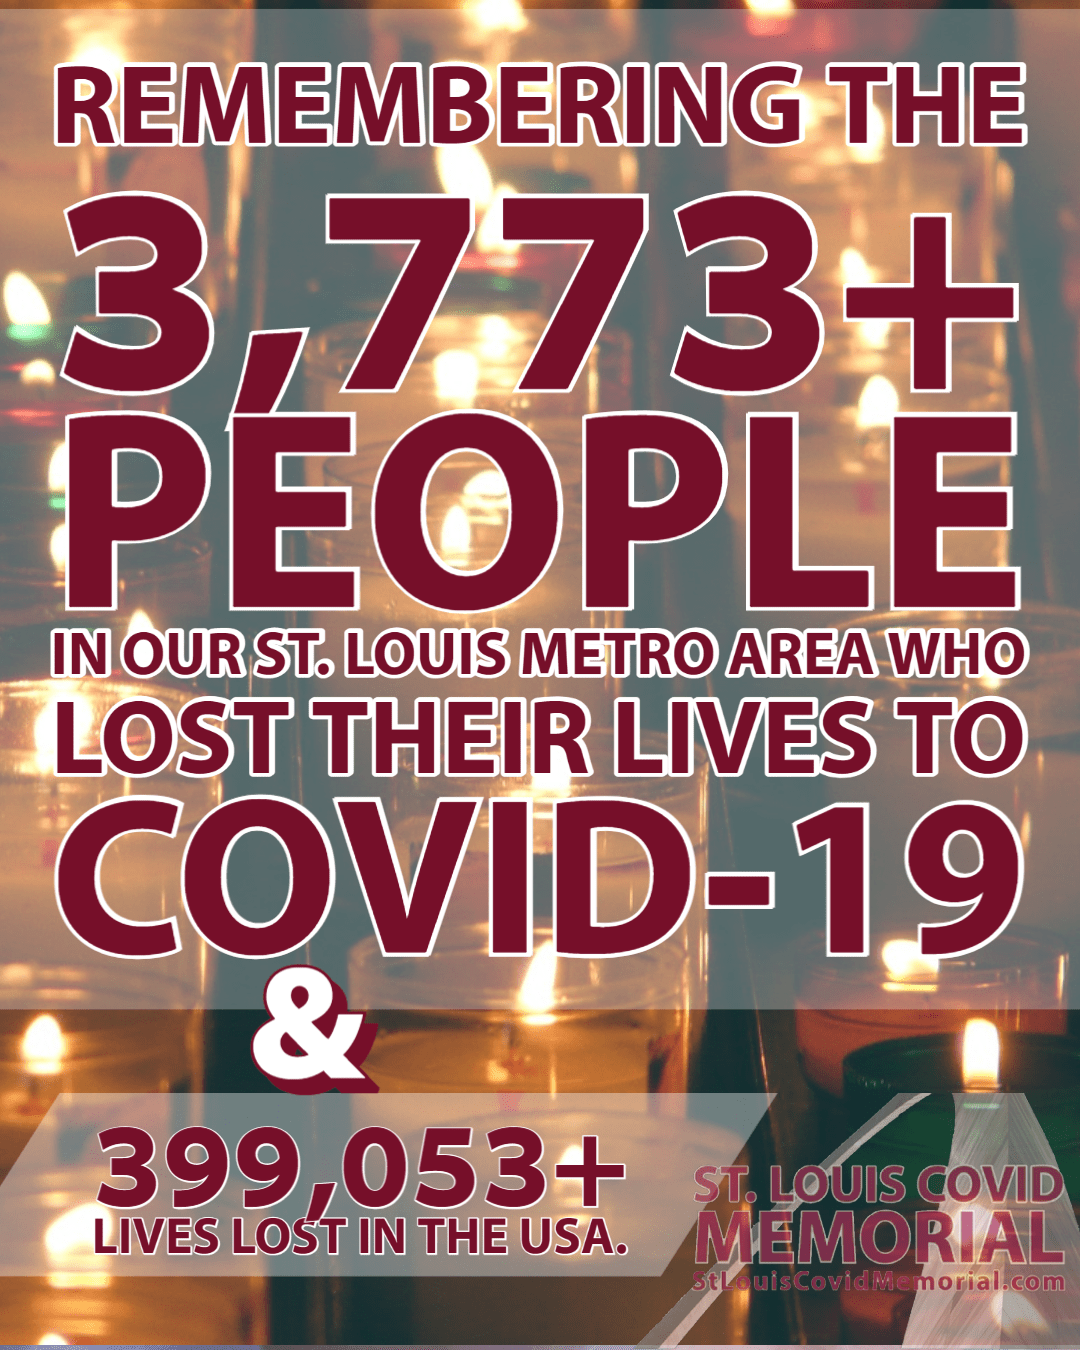 St. Louis Covid Memorial stands in solidarity with and in memorial of all those across the USA who have lost their lives to COVID-19, especially the 3,773+ people in our St. Louis Metro who are deeply and locally missed by their friends and families.